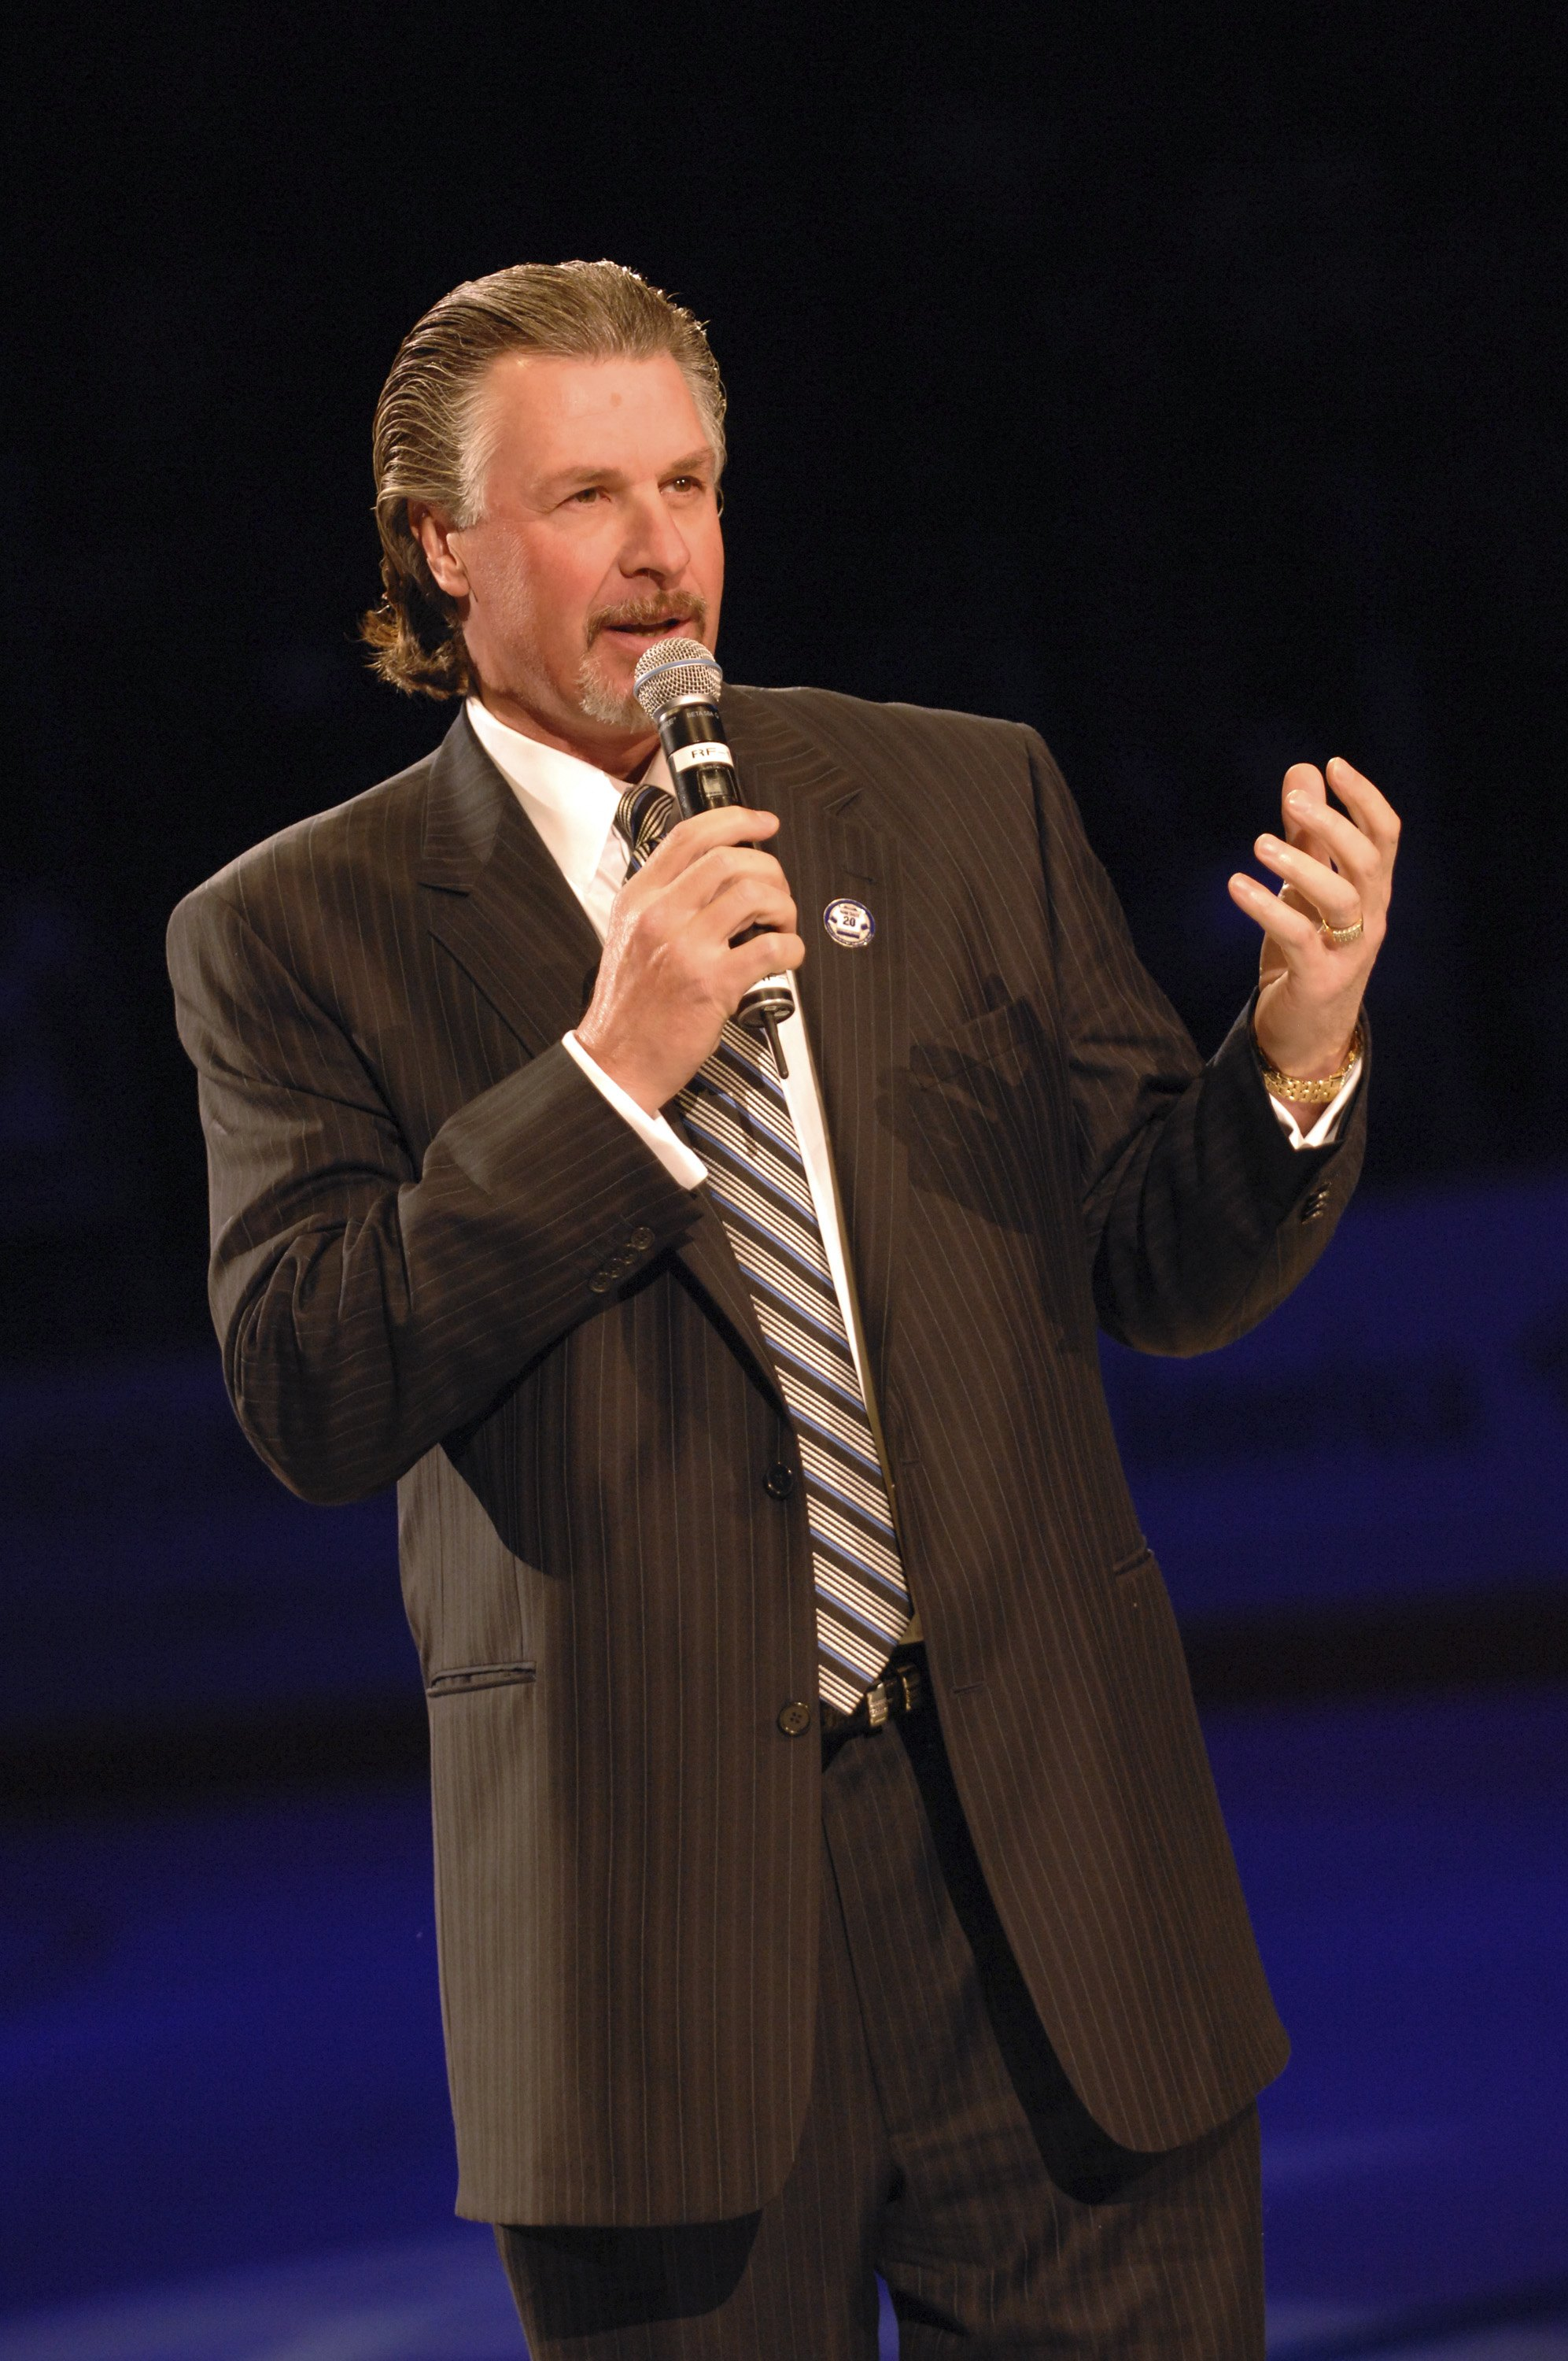 LOS ANGELES, CA- JANUARY 20: Barry Melrose talks during the Luc Robitaille jersey retirement ceremony before the Los Angeles Kings play against the Phoenix Coyotes on January 20, 2007 at the Staples Center in Los Angeles, California.  (Photo by Noah Graha